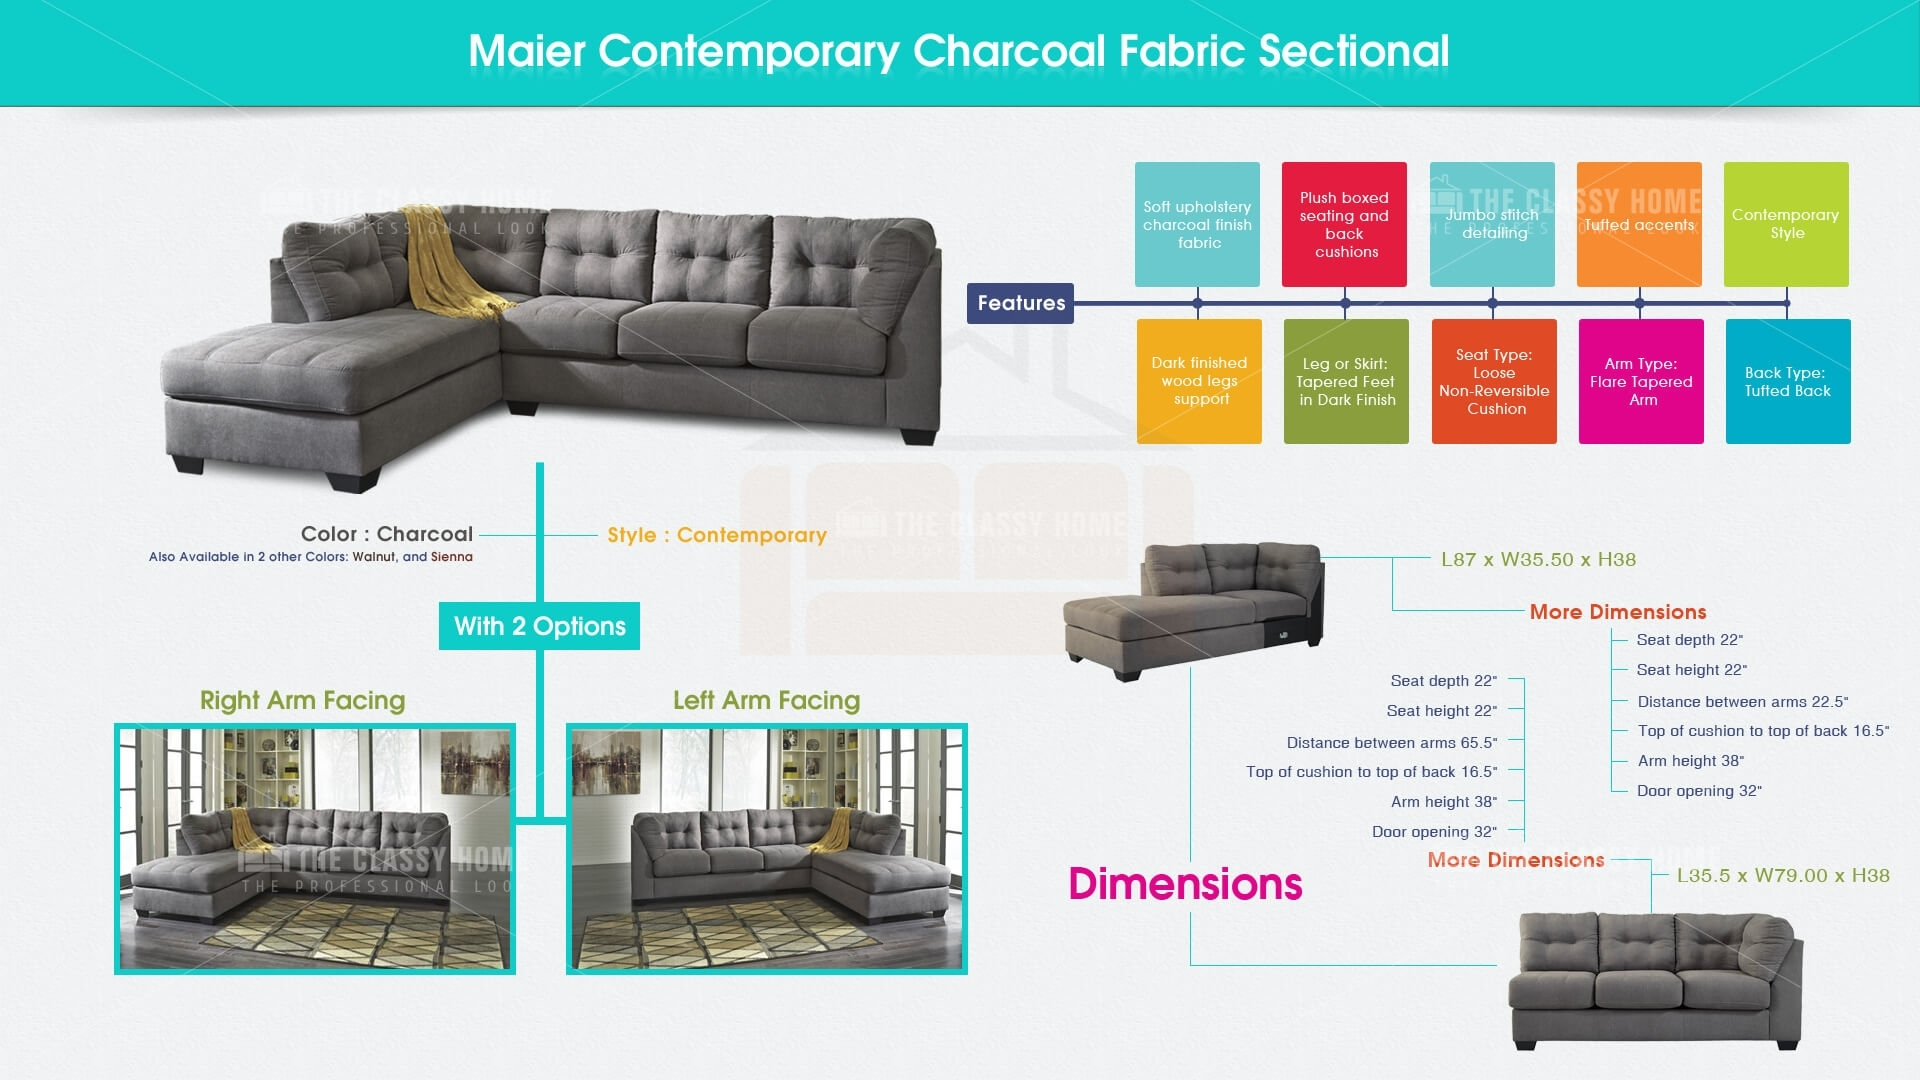 Ashley Furniture Maier Charcoal Raf Chaise Sectional | The Classy Home Within Lucy Grey 2 Piece Sectionals With Raf Chaise (Image 6 of 25)